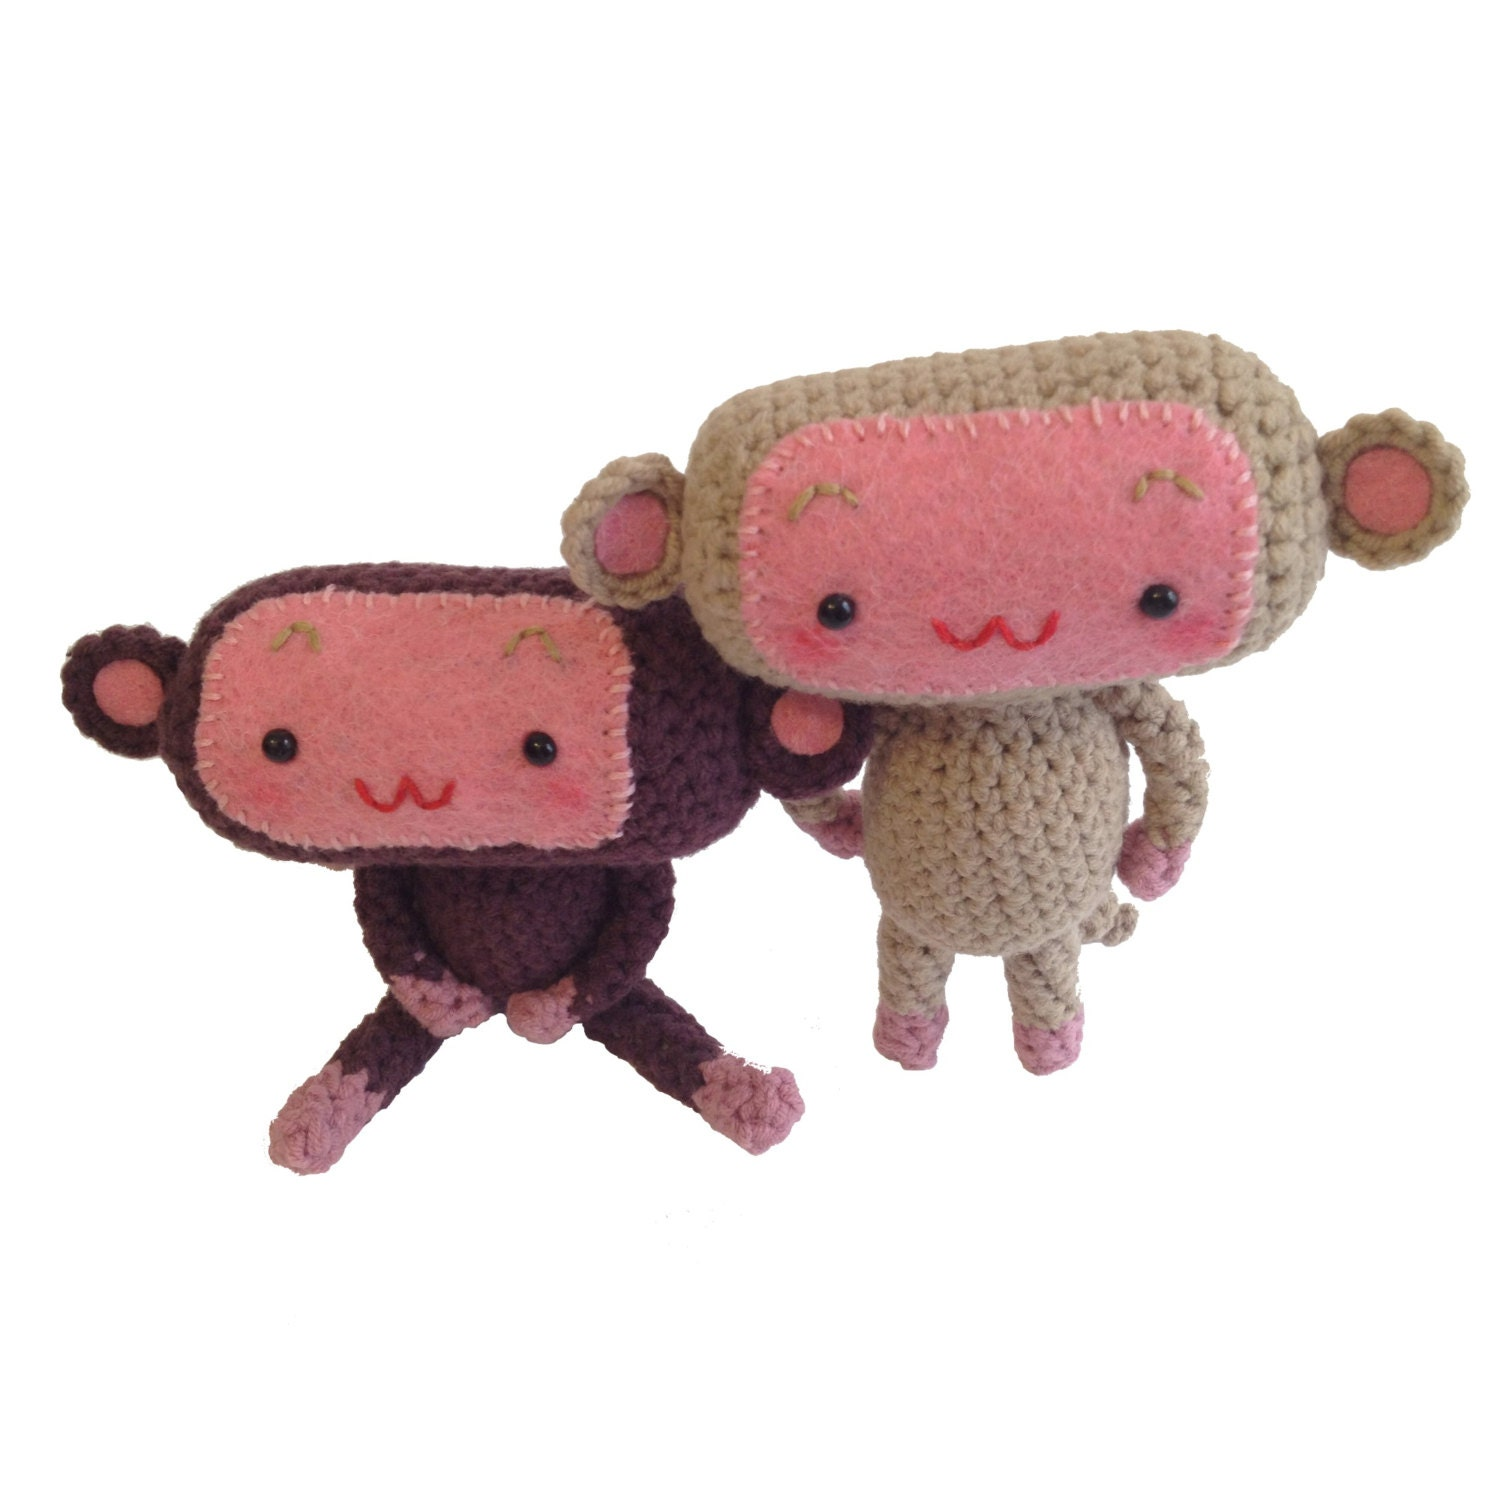 Amigurumi Monkey Etsy : Little monkey amigurumi by TakeAwayCrochet on Etsy